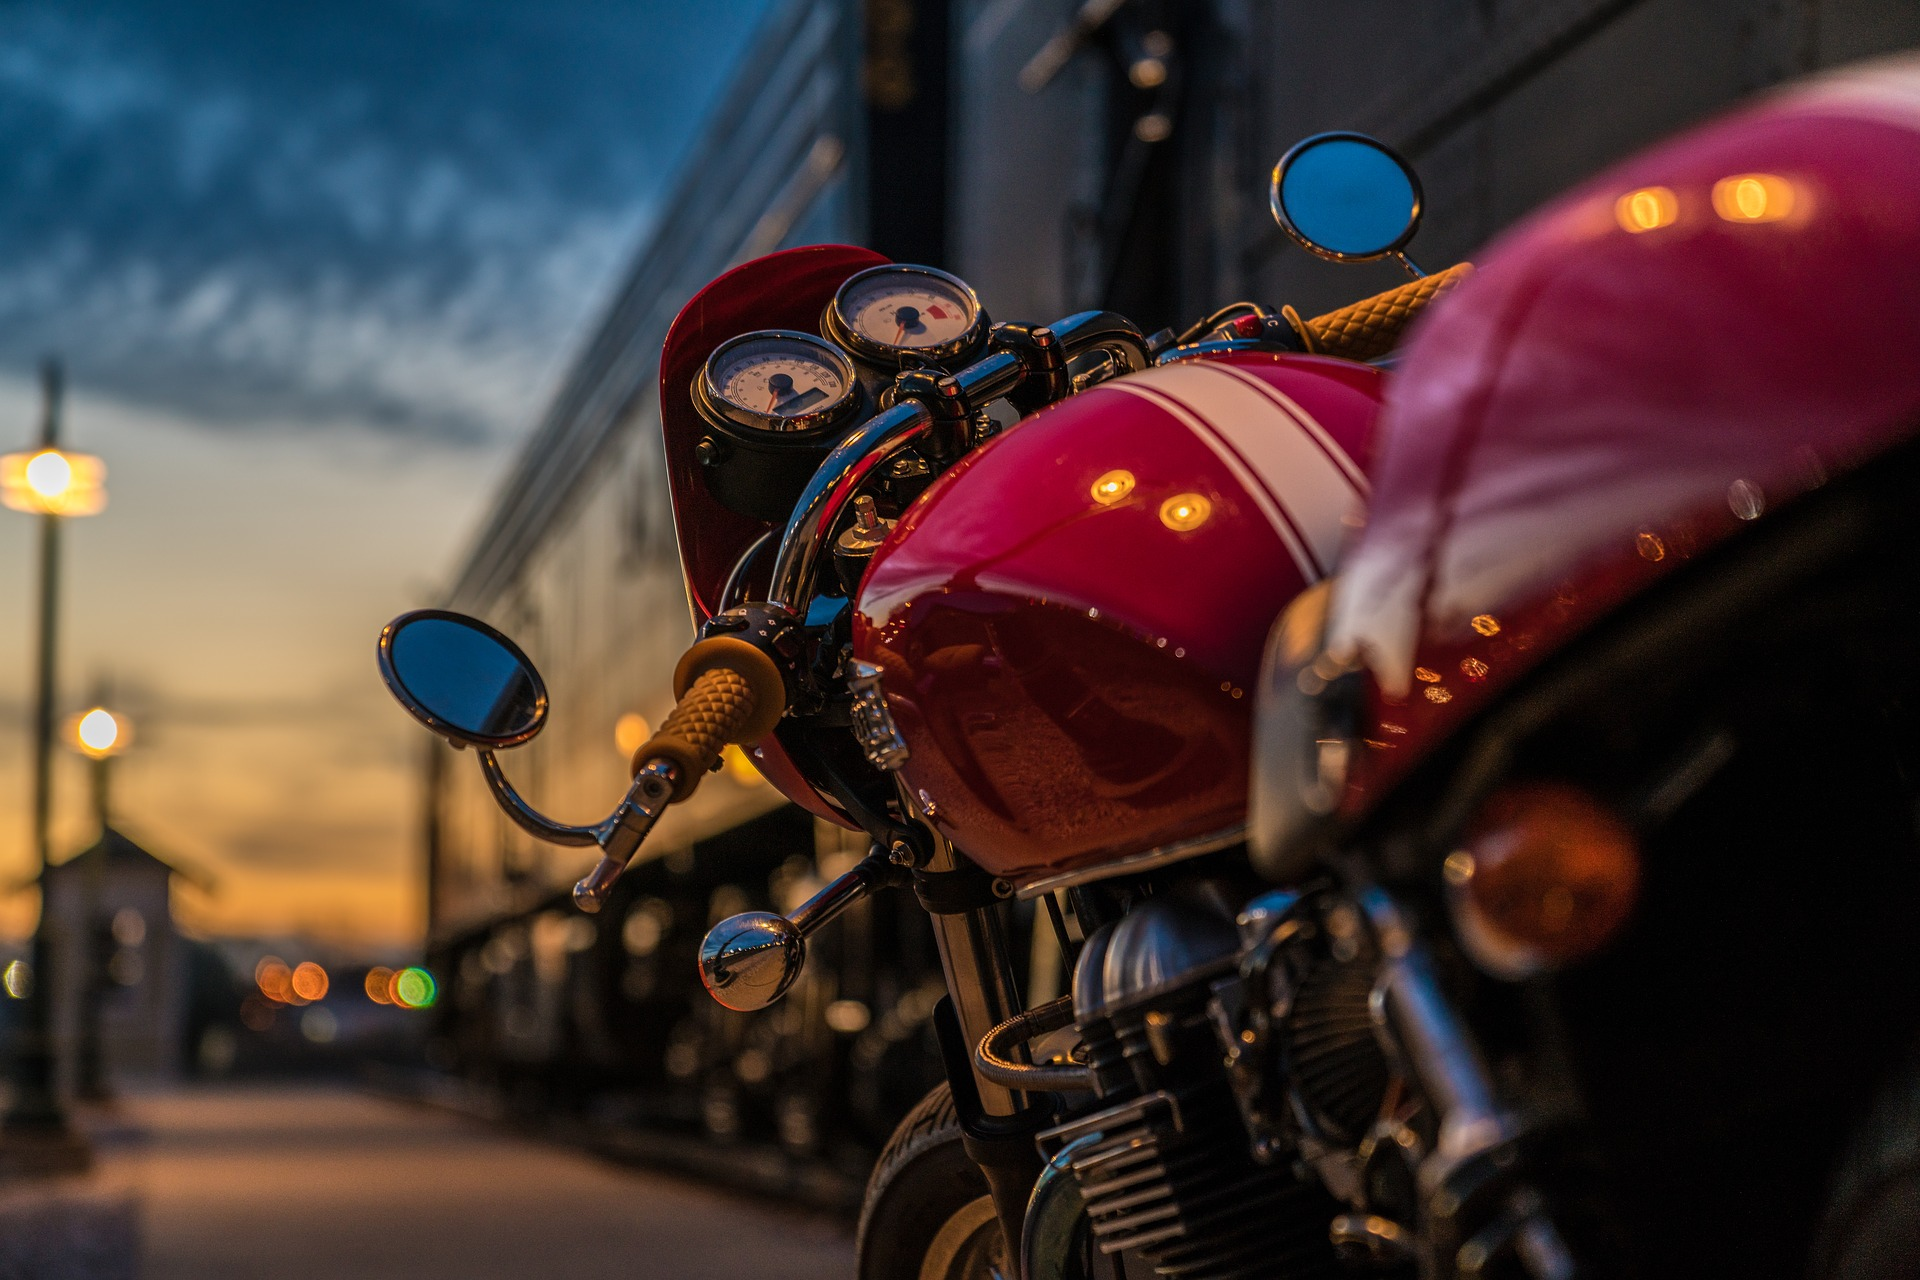 Motorcycle - 2